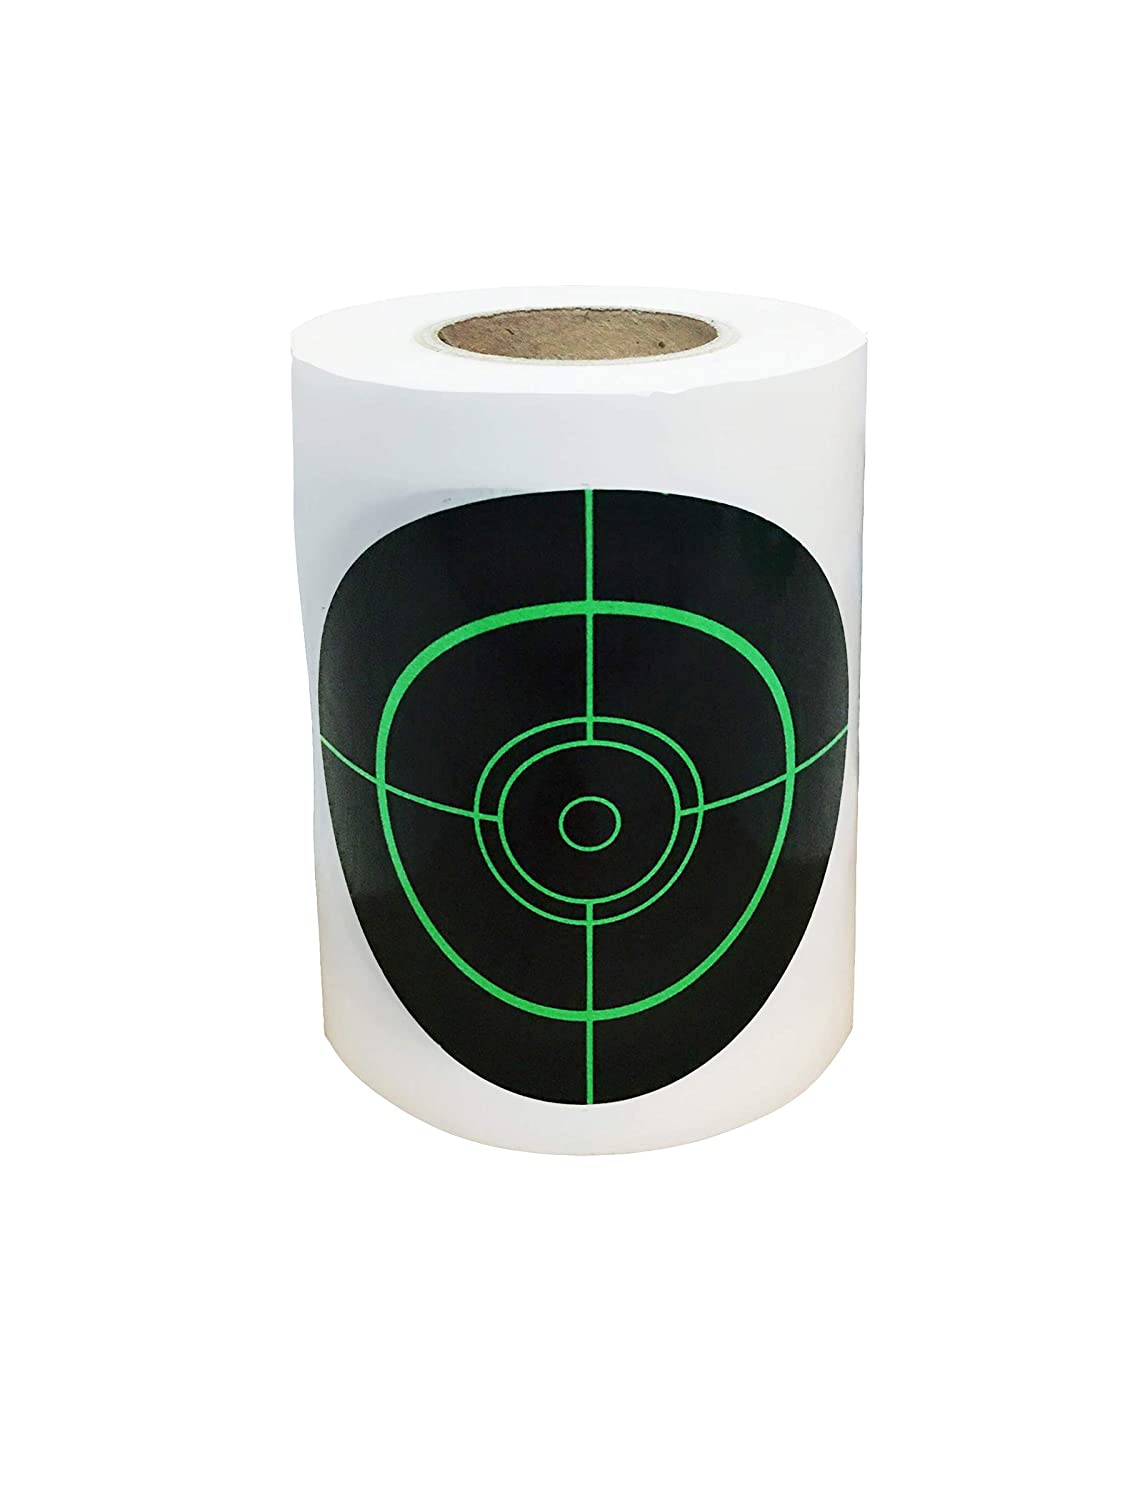 Shooting Targets 3 inch 250 Roll Splatter Targets Self Adhesive Paper Reactive Target Stickers for Gun Rifle Pistol Bb Gun Airsoft Pellet Gun Air Rifle Popresin